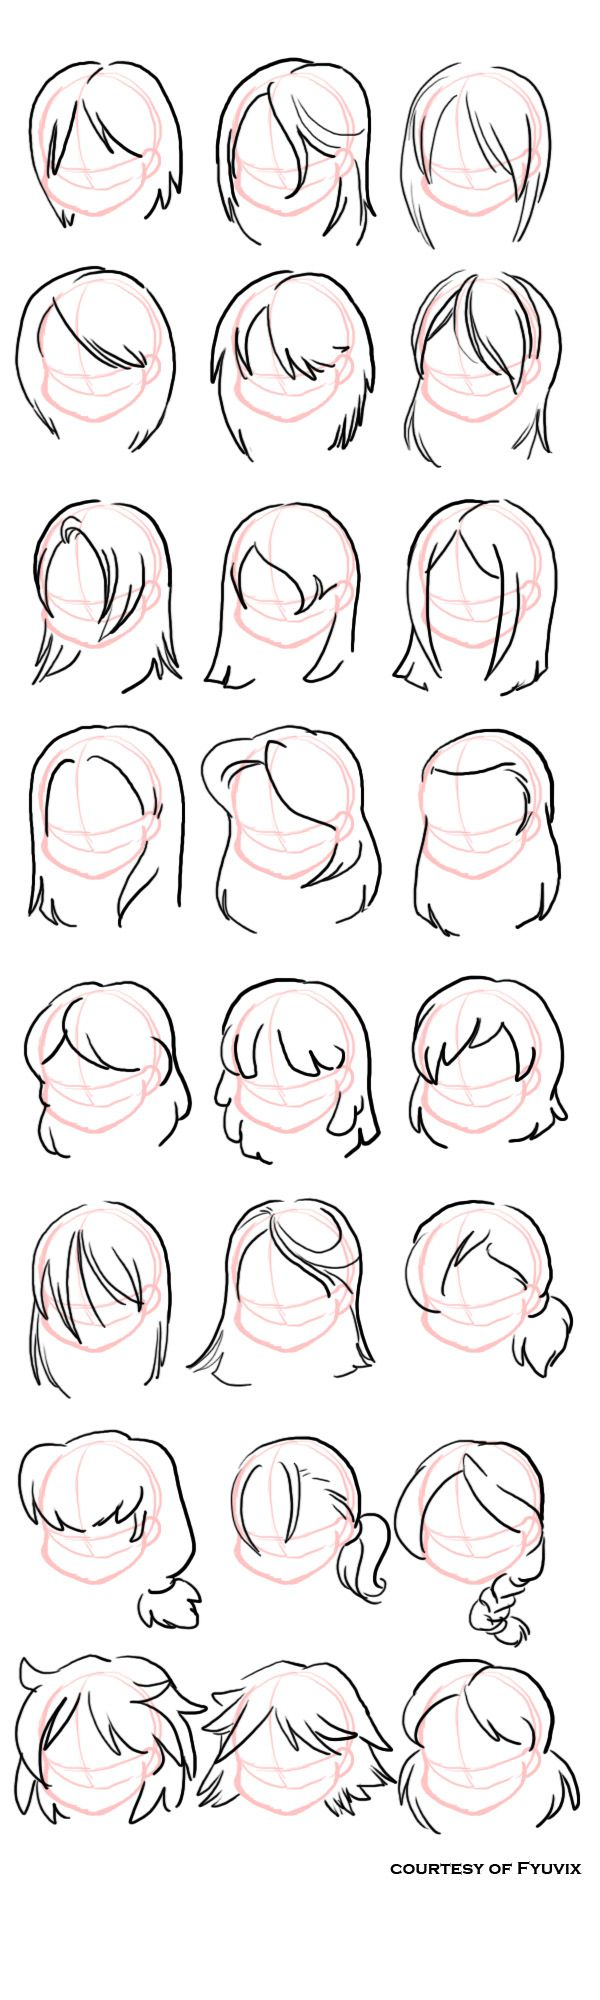 Hairstyles- Straight by =fyuvix ✤ || CHARACTER DESIGN REFERENCES | Find more at https://www.facebook.com/CharacterDesignReferences if you're looking for: #line #art #character #design #model #sheet #illustration #expressions #best #concept #animation #drawing #archive #library #reference #anatomy #traditional #draw #development #artist #pose #settei #gestures #how #to #tutorial #conceptart #modelsheet #cartoon #hair